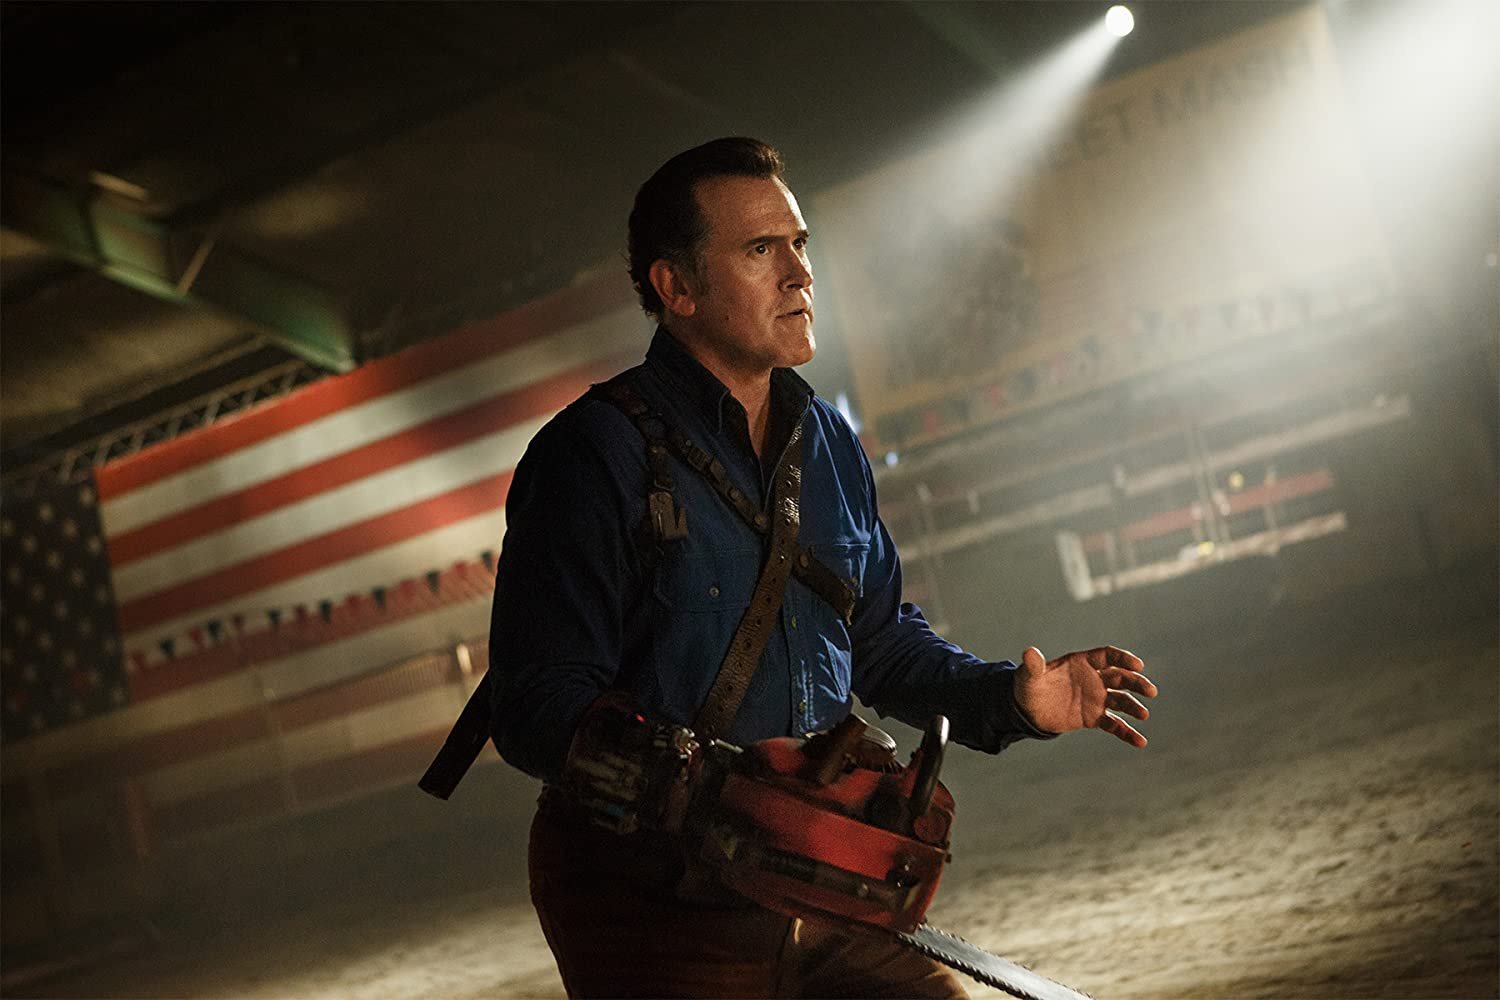 Bruce Campbell in Ash vs Evil Dead (2015)